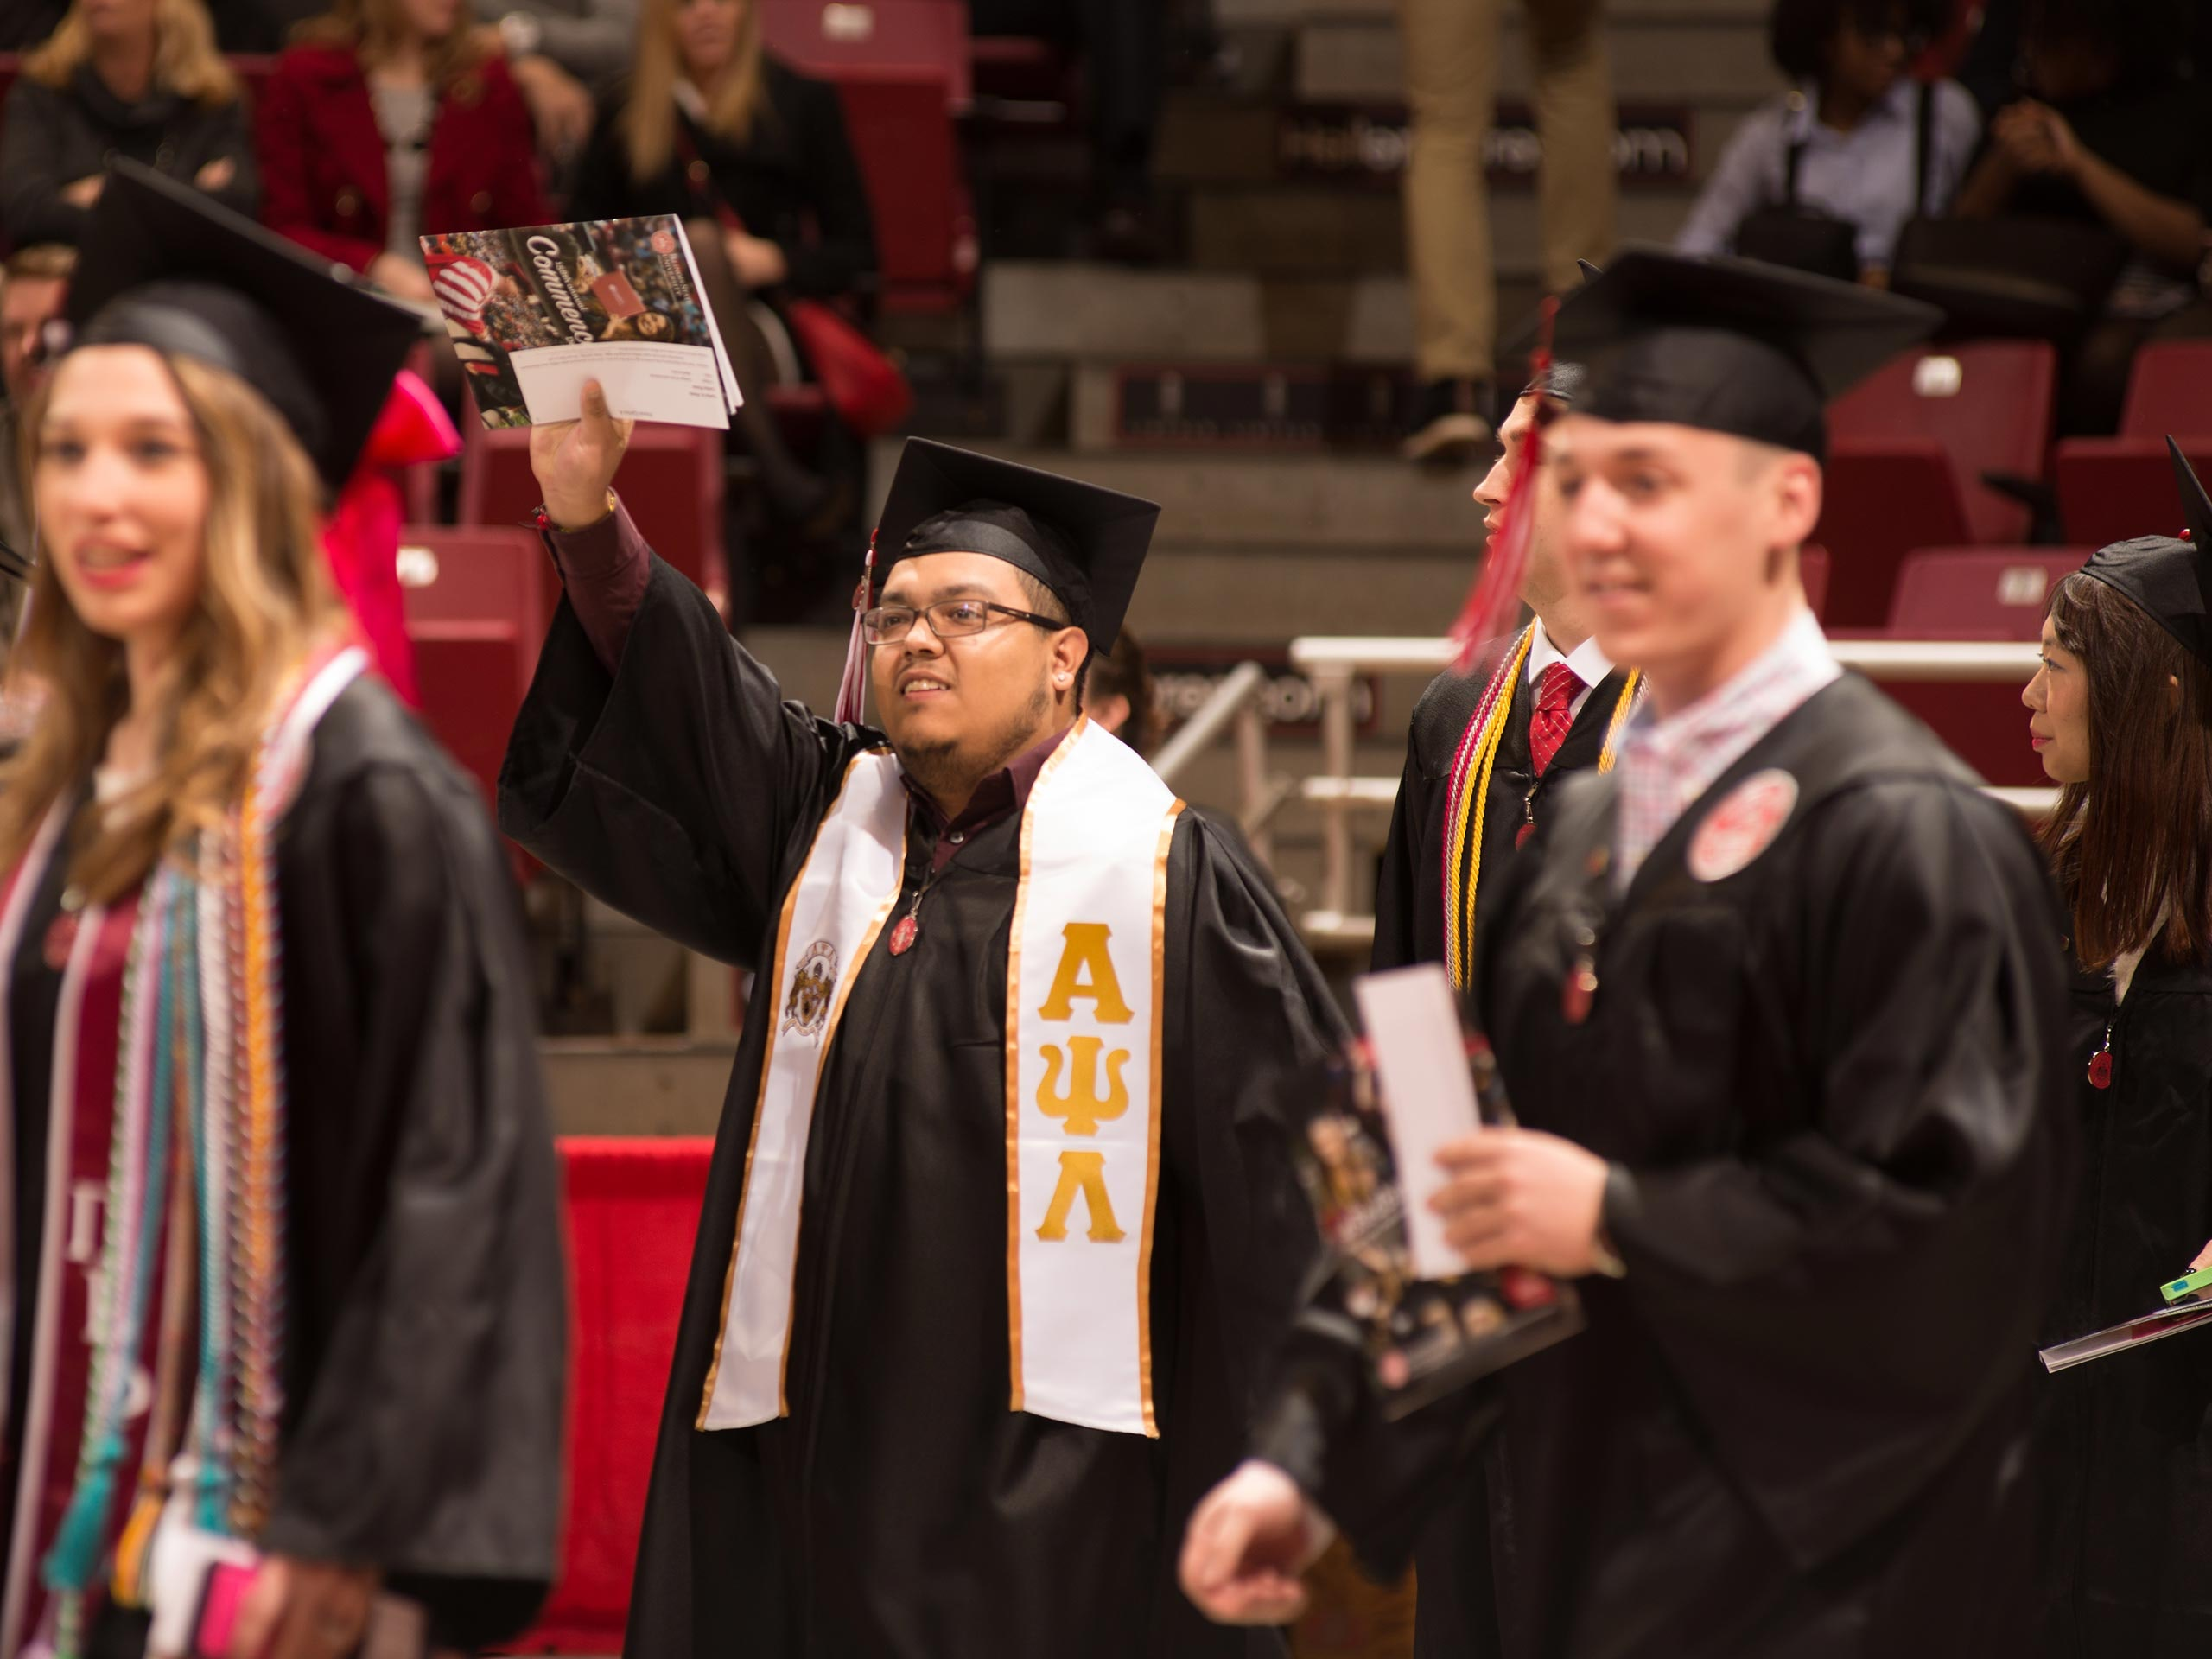 Male student walking to his seat before the commencement ceremony.